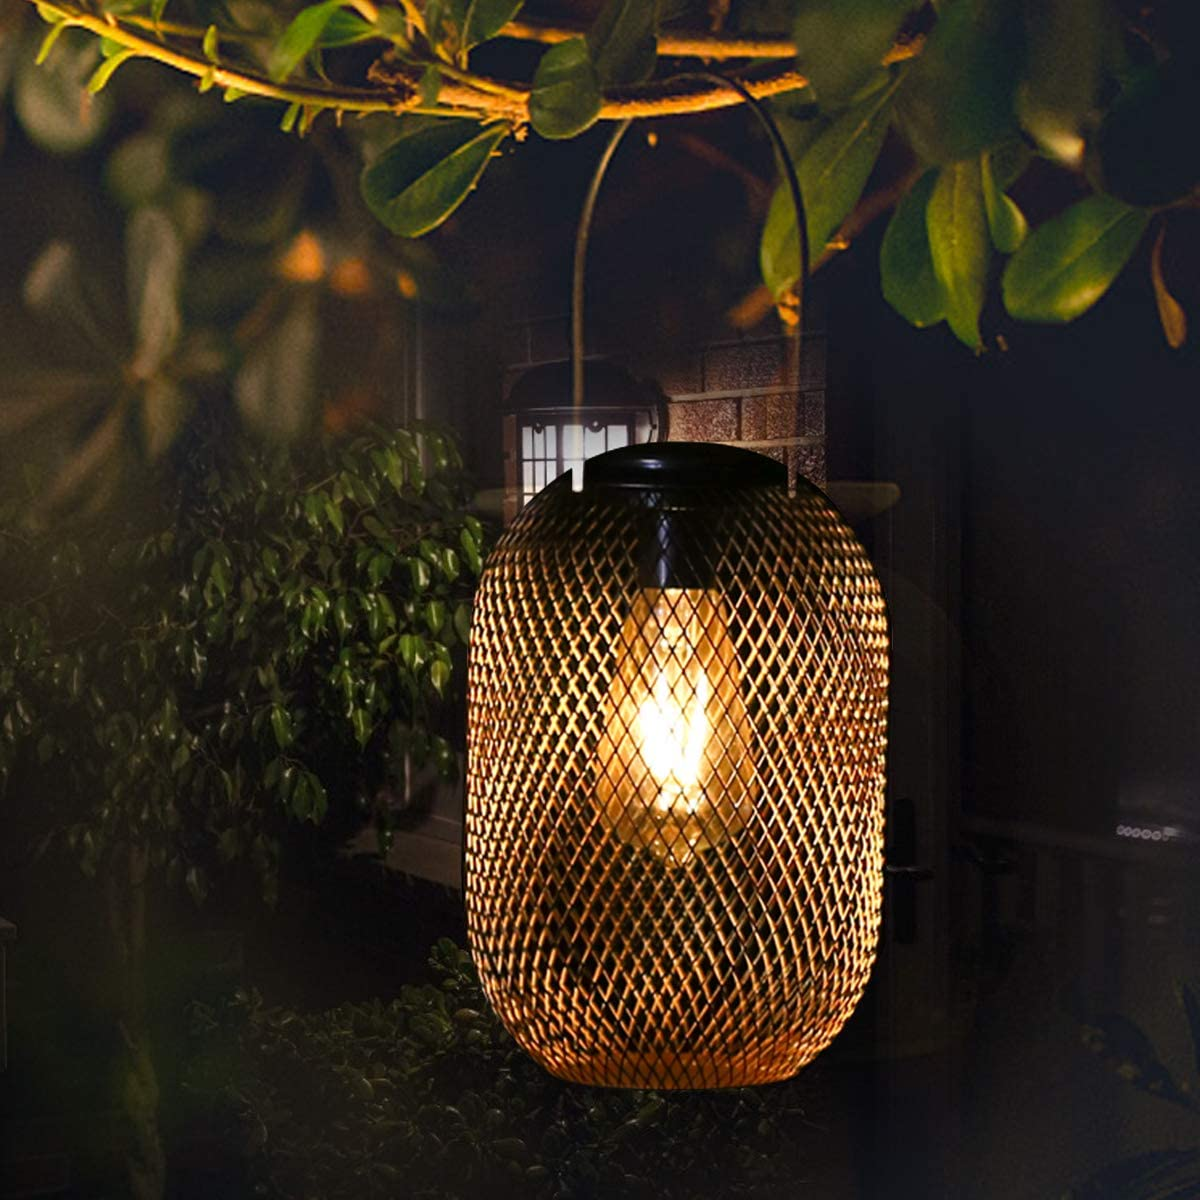 Solar Hanging Lanterns Outdoor, Solar Waterproof Lantern Lights Vintage Metal LED Decorative Tabletop Light with Handle for Indoor Garden Patio Landscape Yard (Copper)